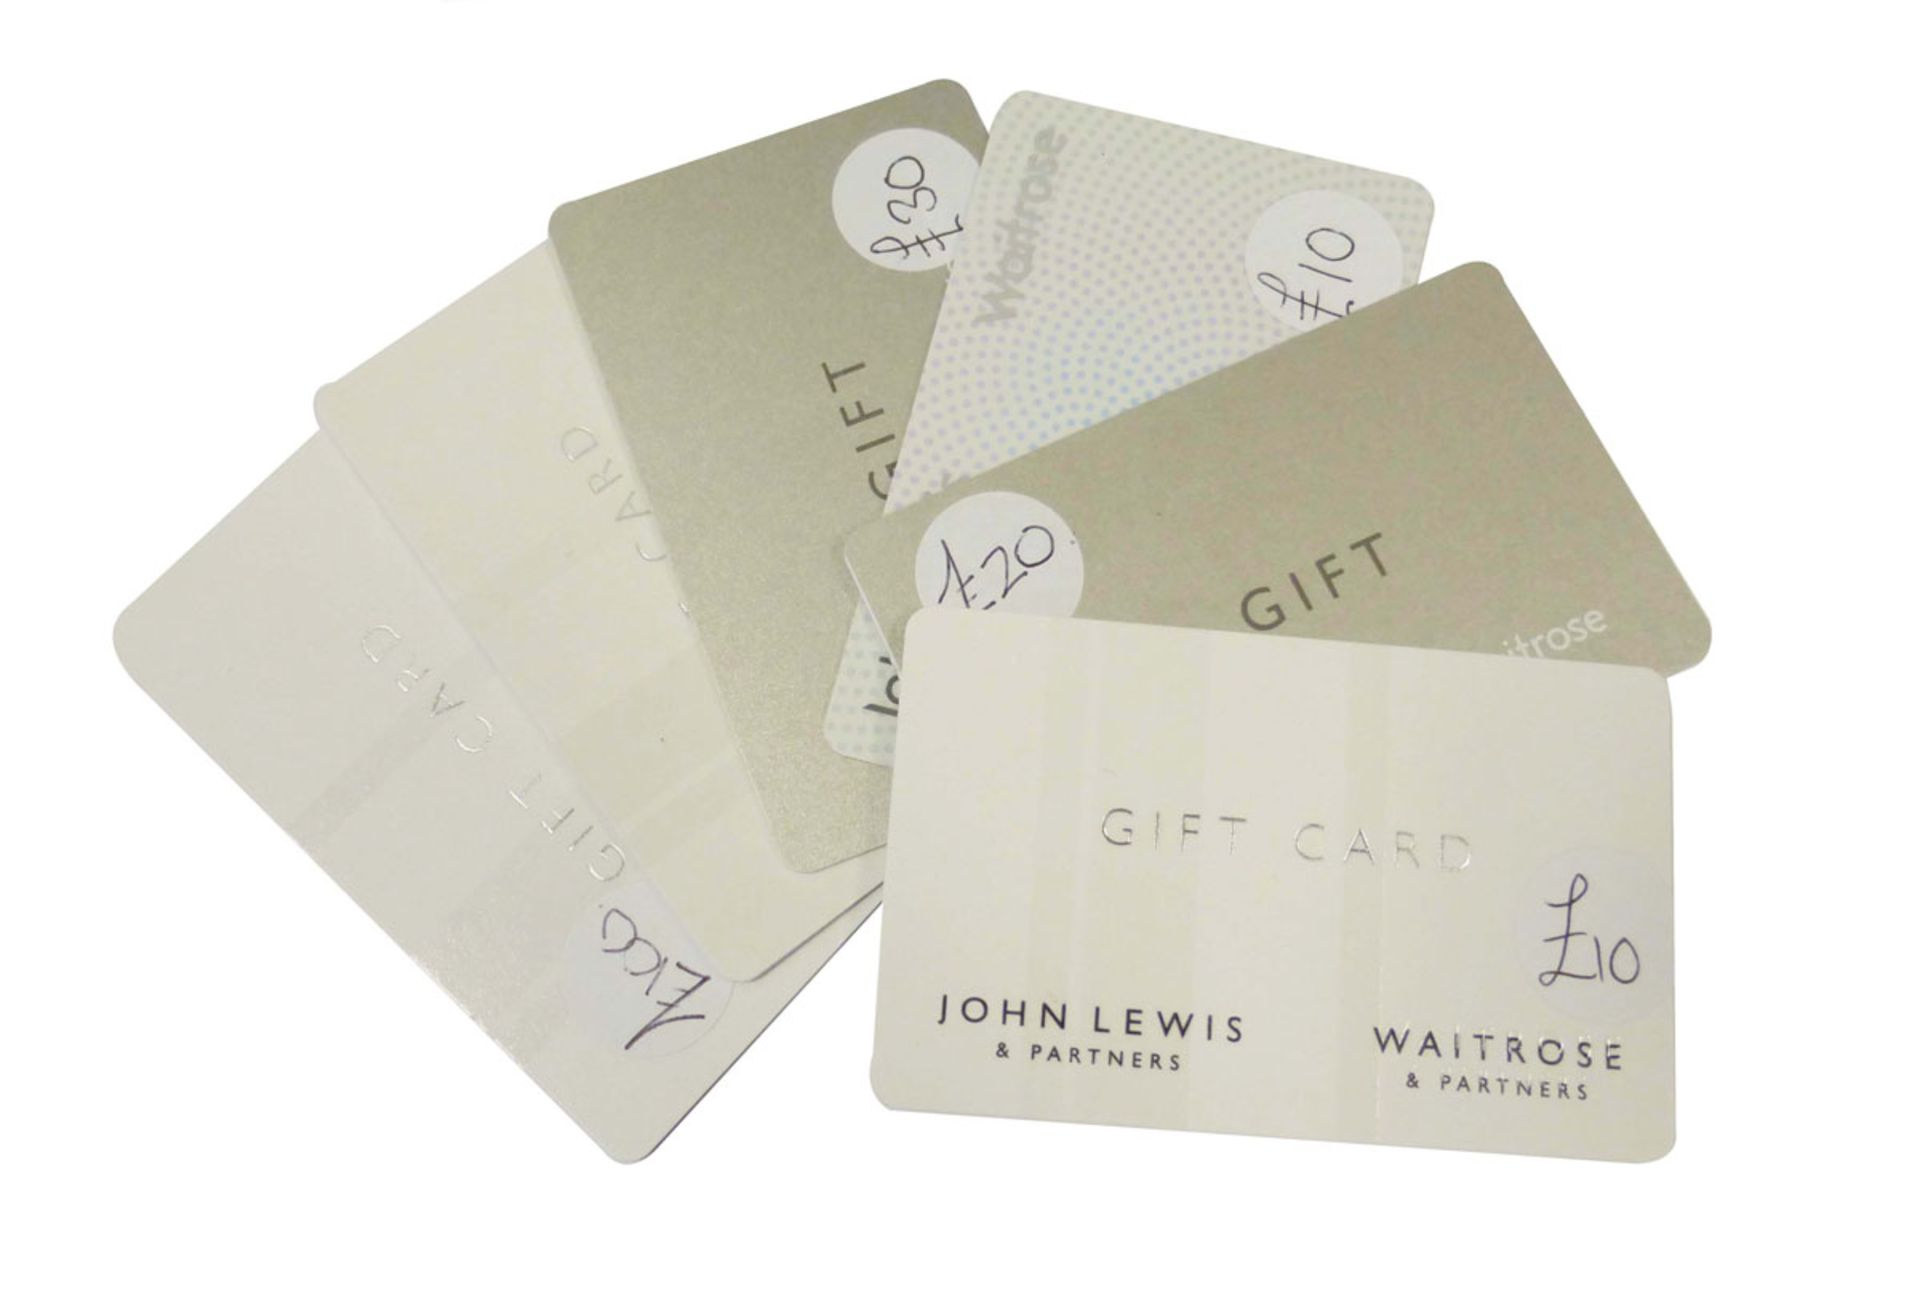 John Lewis (x6) - Total face value £200